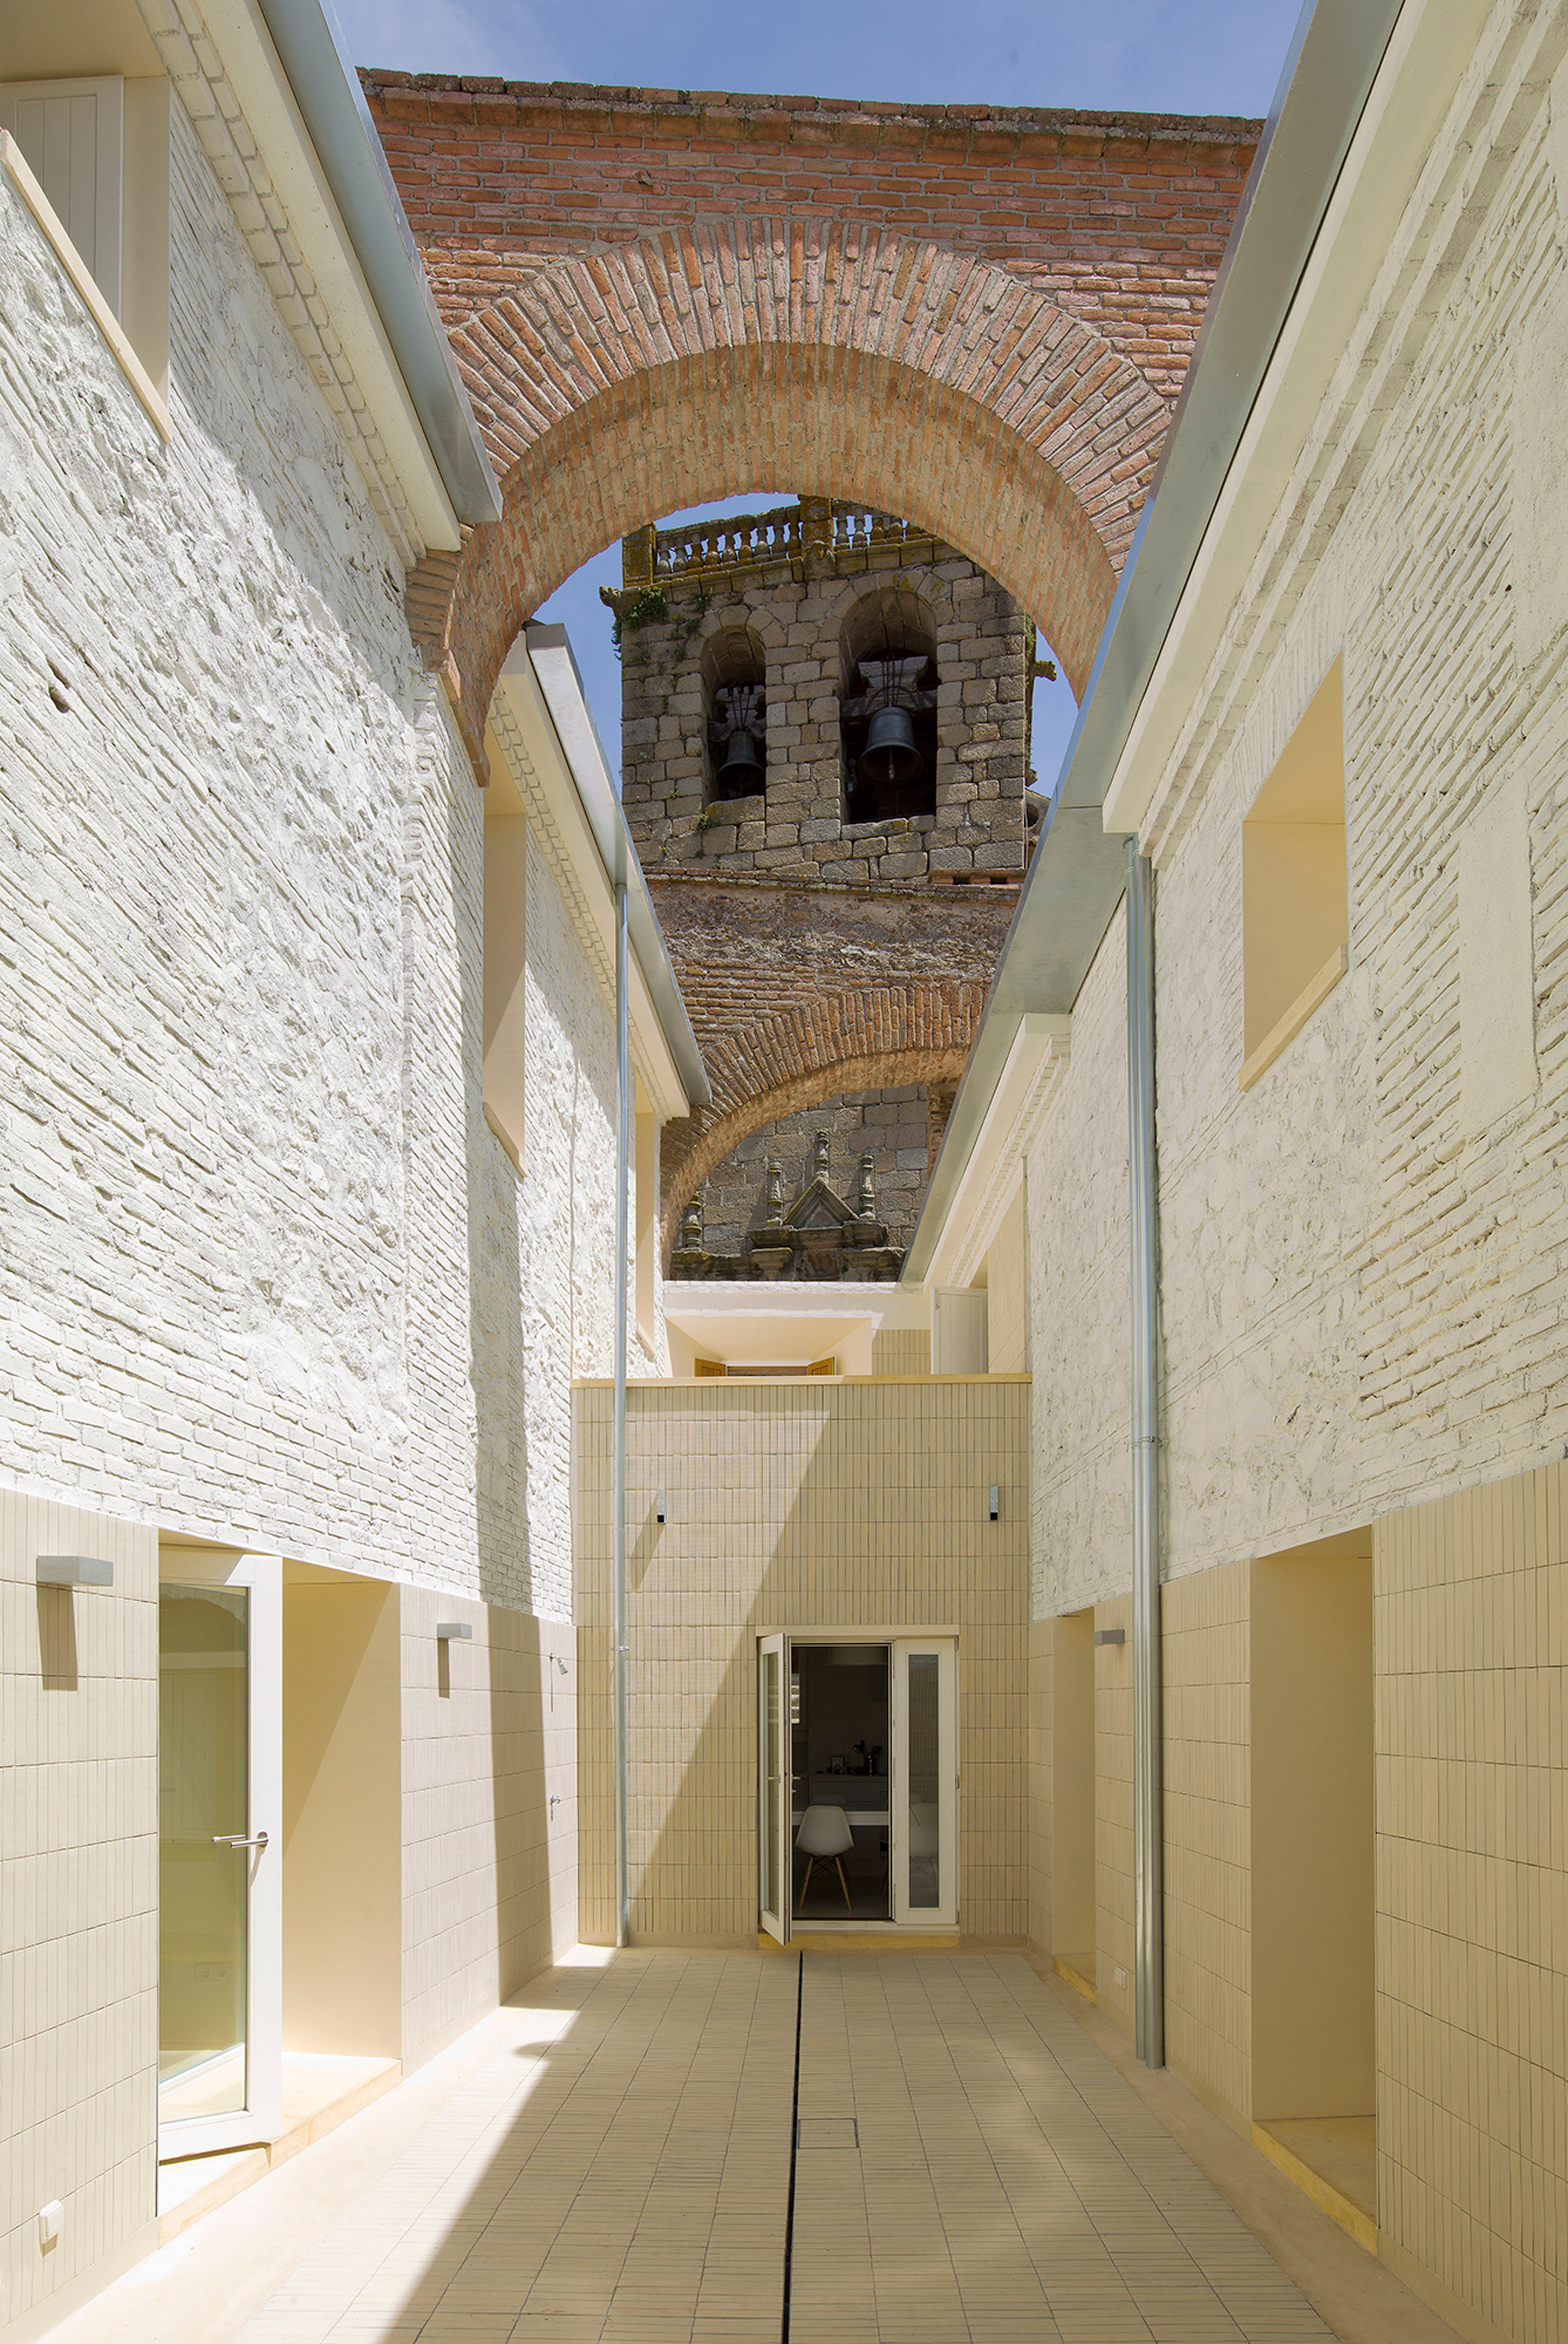 Paredes Pedrosa Arquitectos transforms ruined buildings within walls of Spanish castle intolight-filled homes